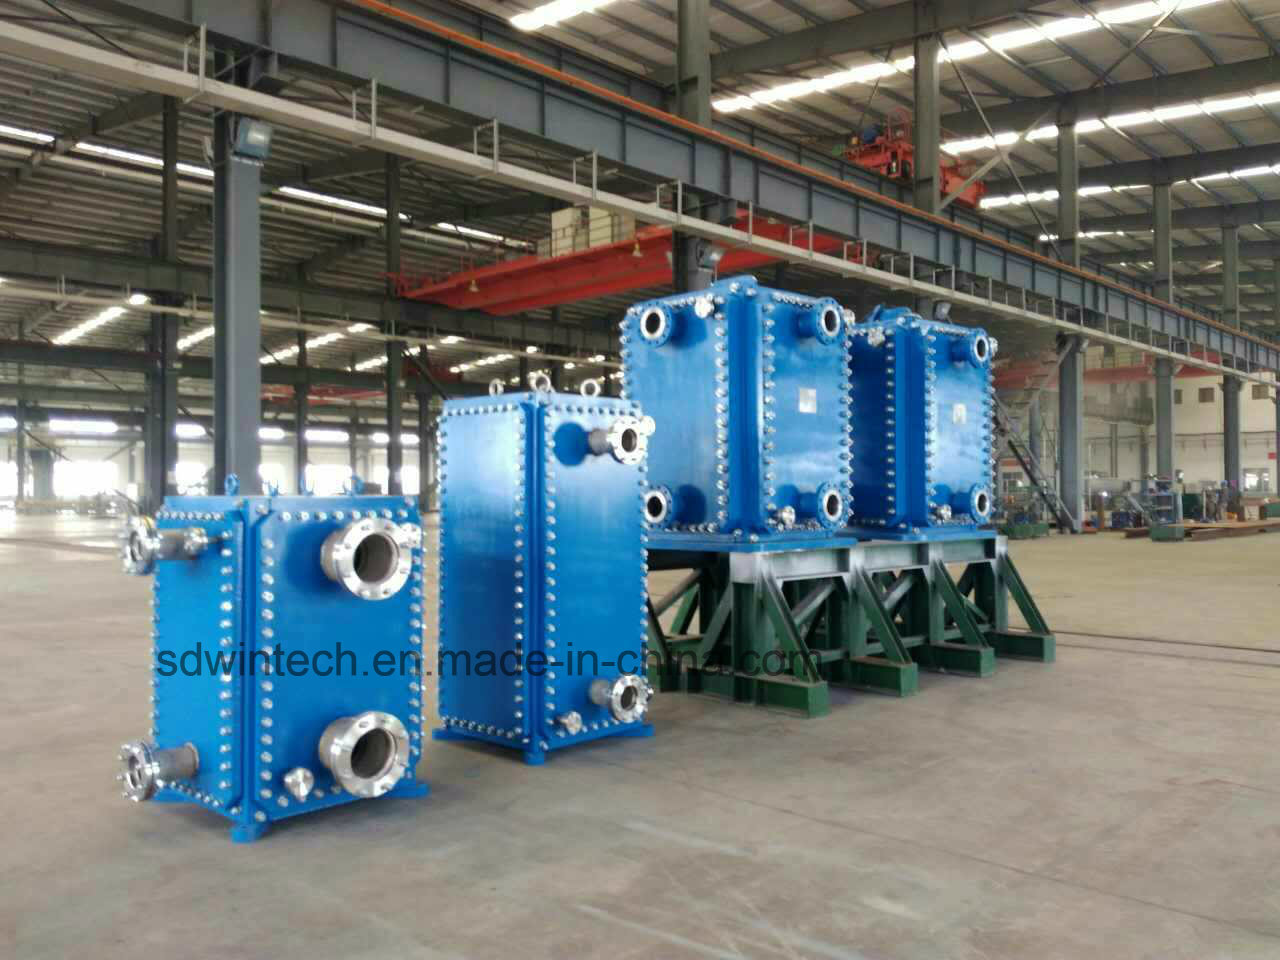 China Plate Heat Exchanger as Condenser and Vaporizer - China Alfa ...